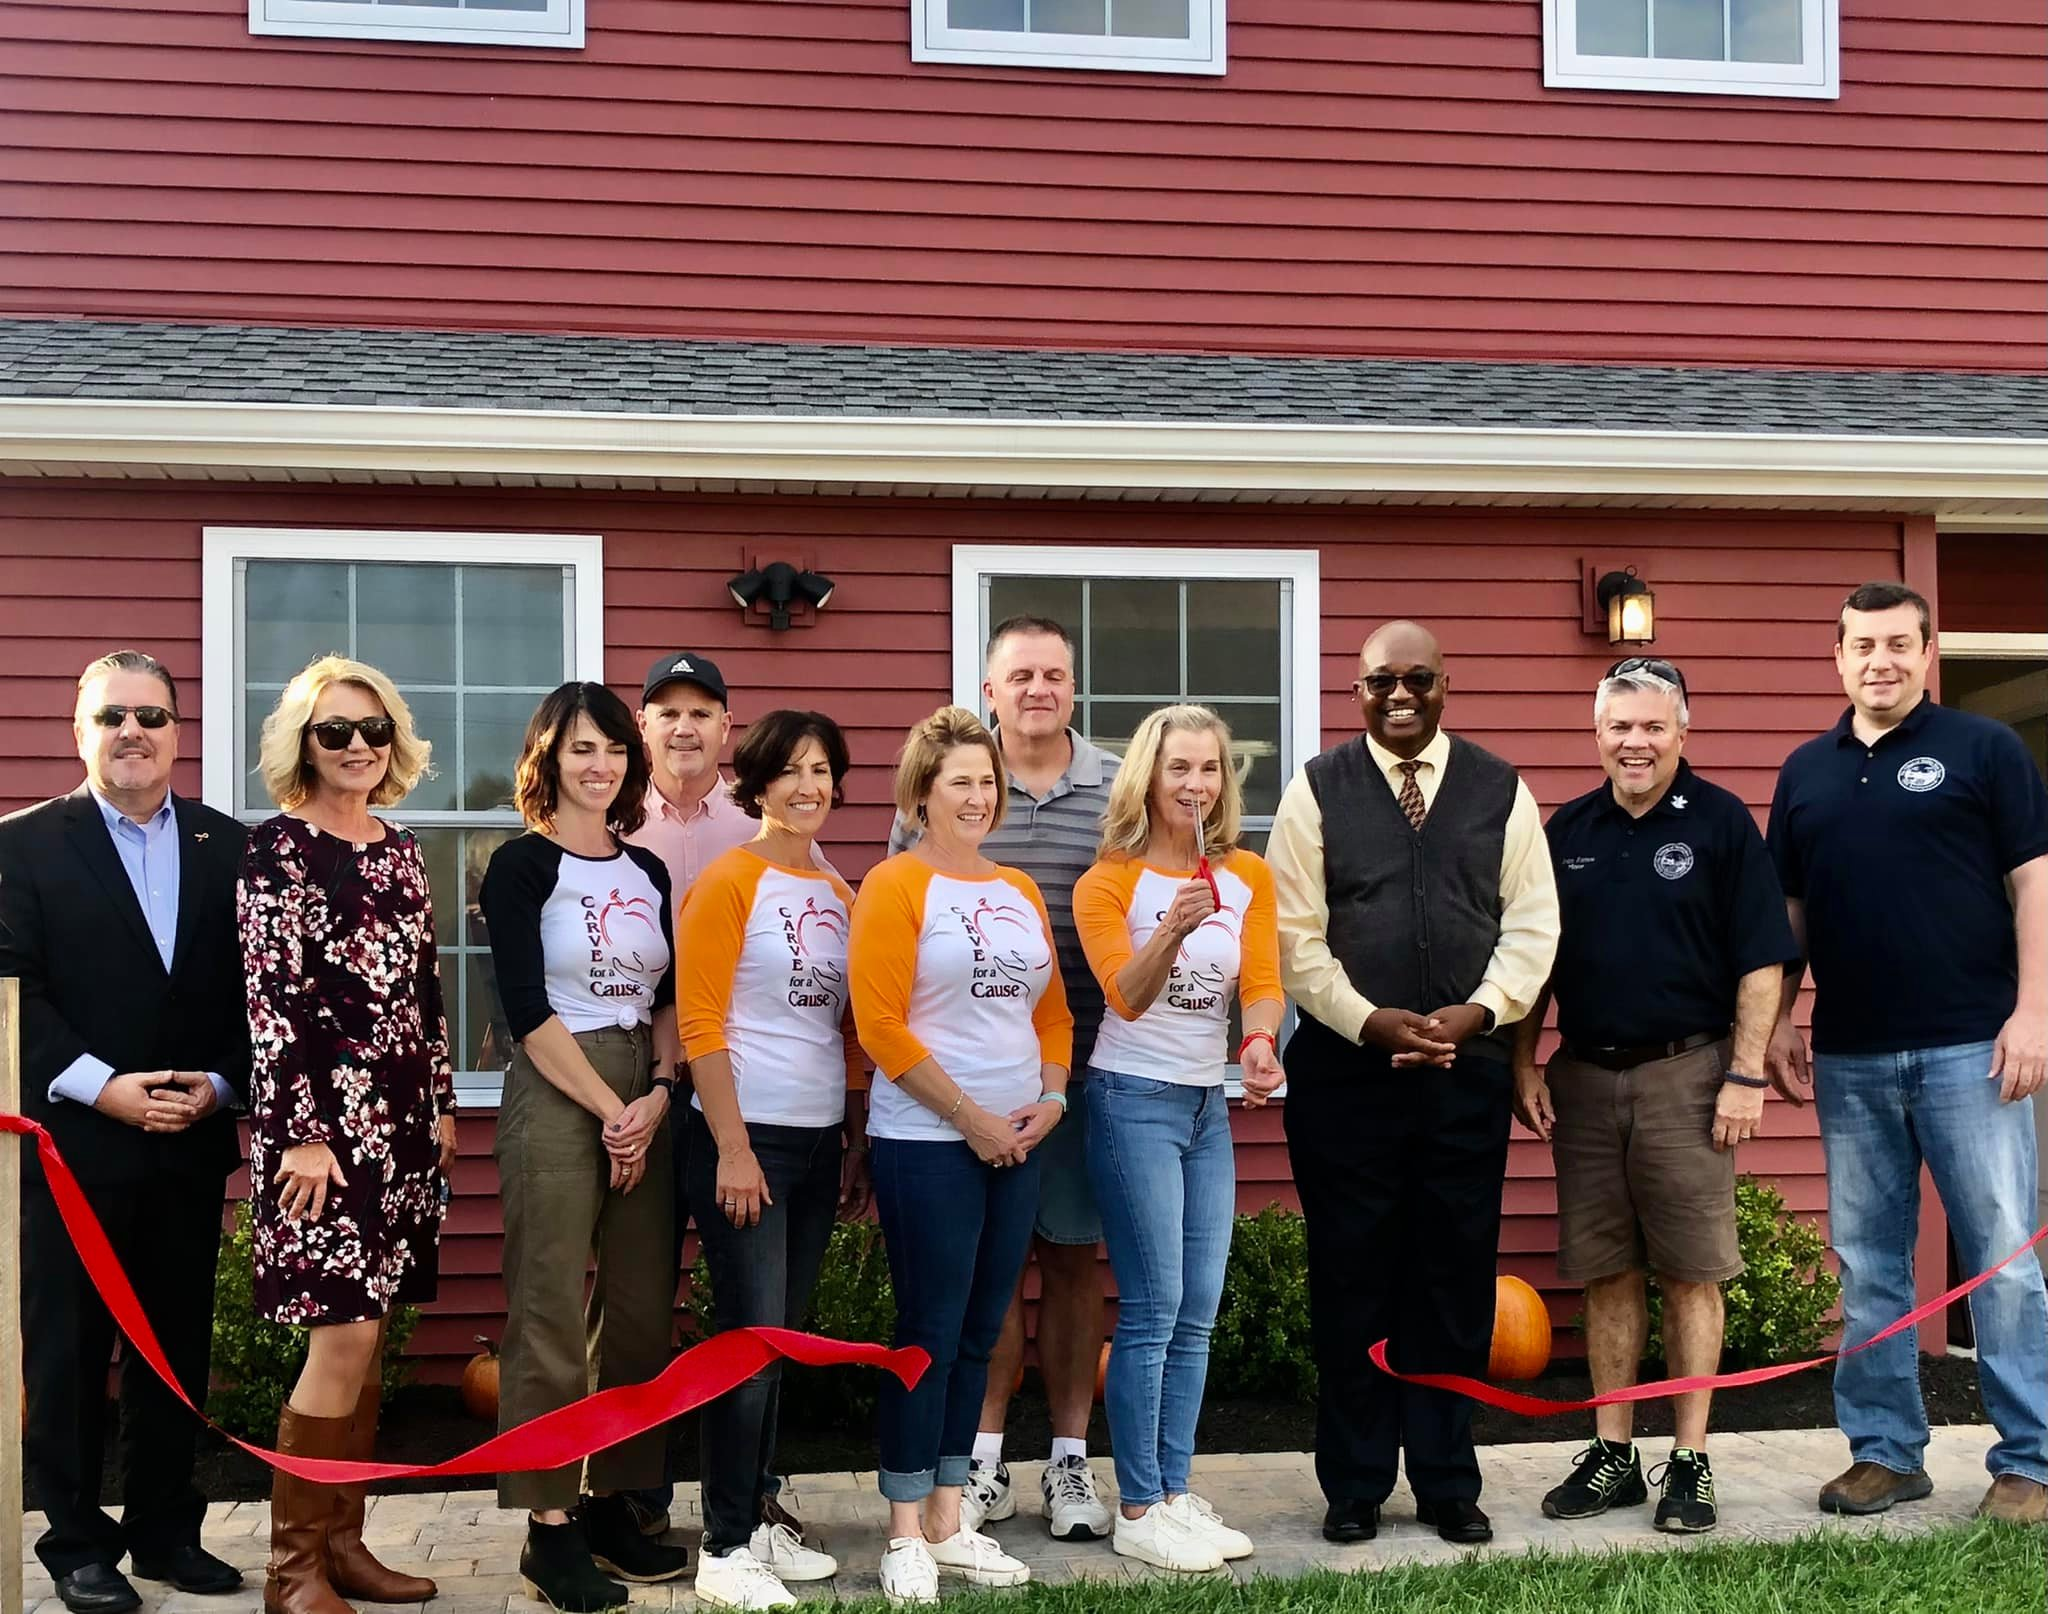 WALDEN SAVINGS BANK ATTENDS RIBBON CUTTING CEREMONY